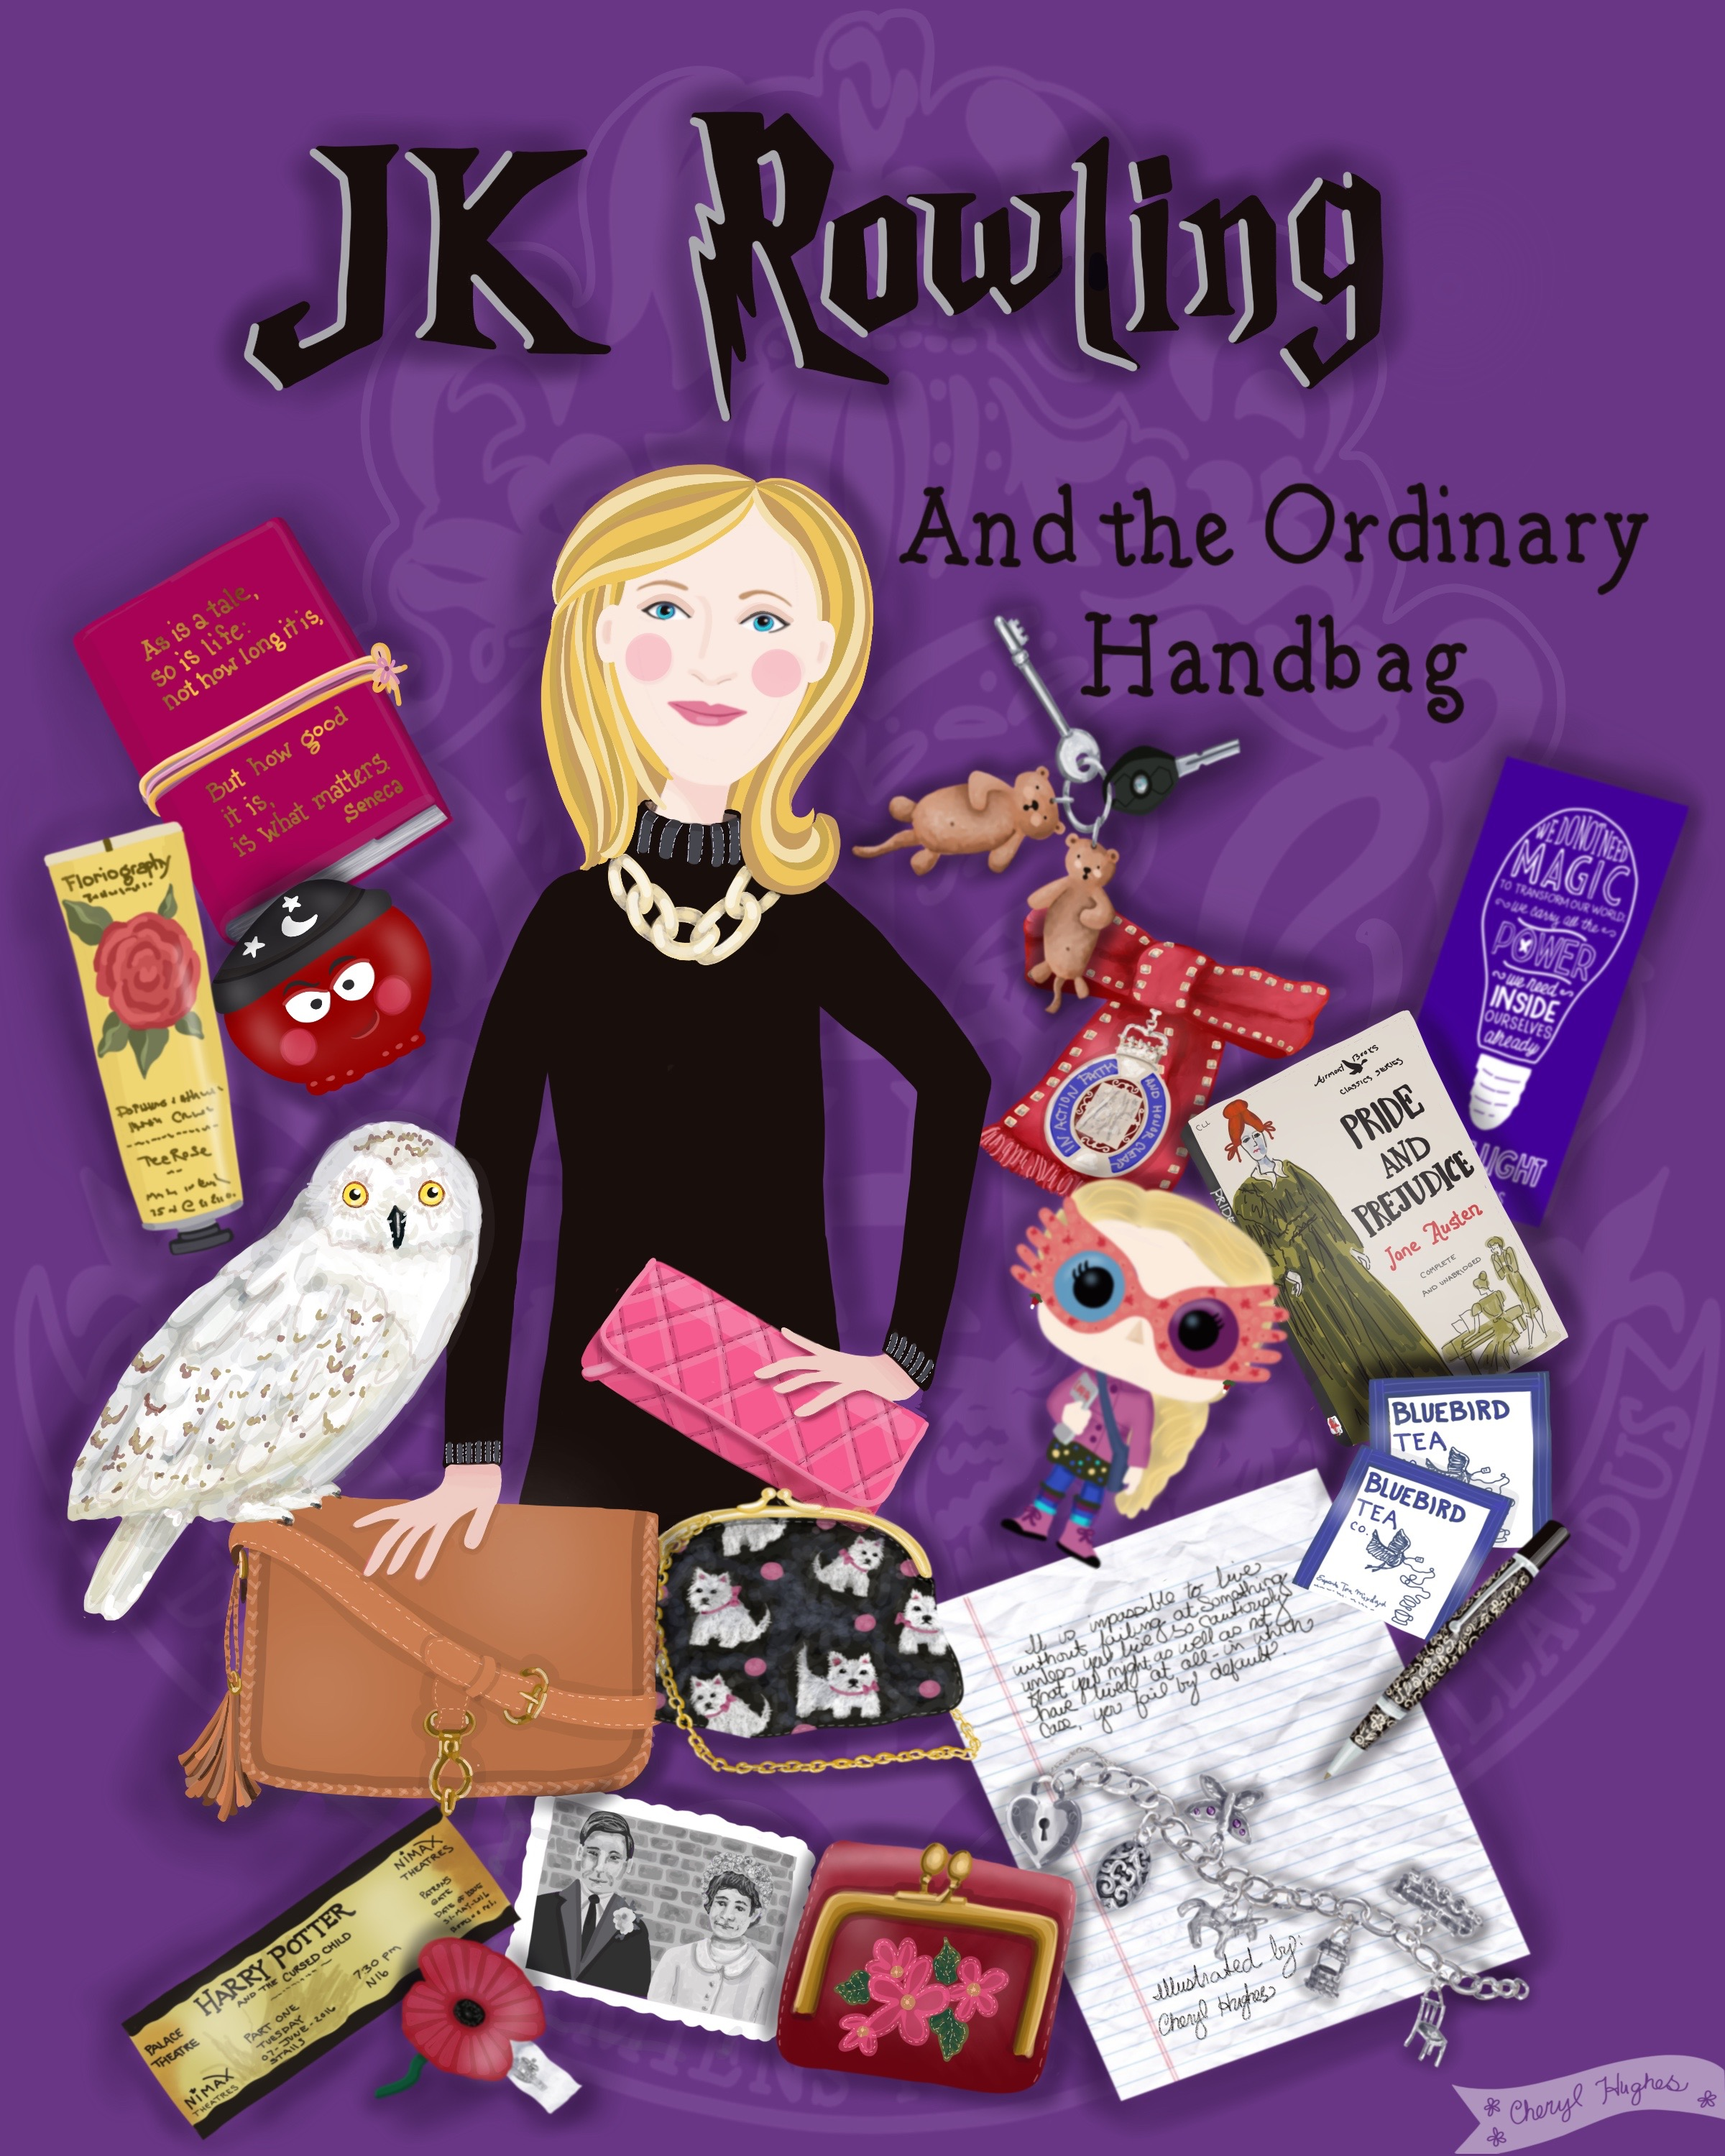 What's in JK Rowling's Bag?